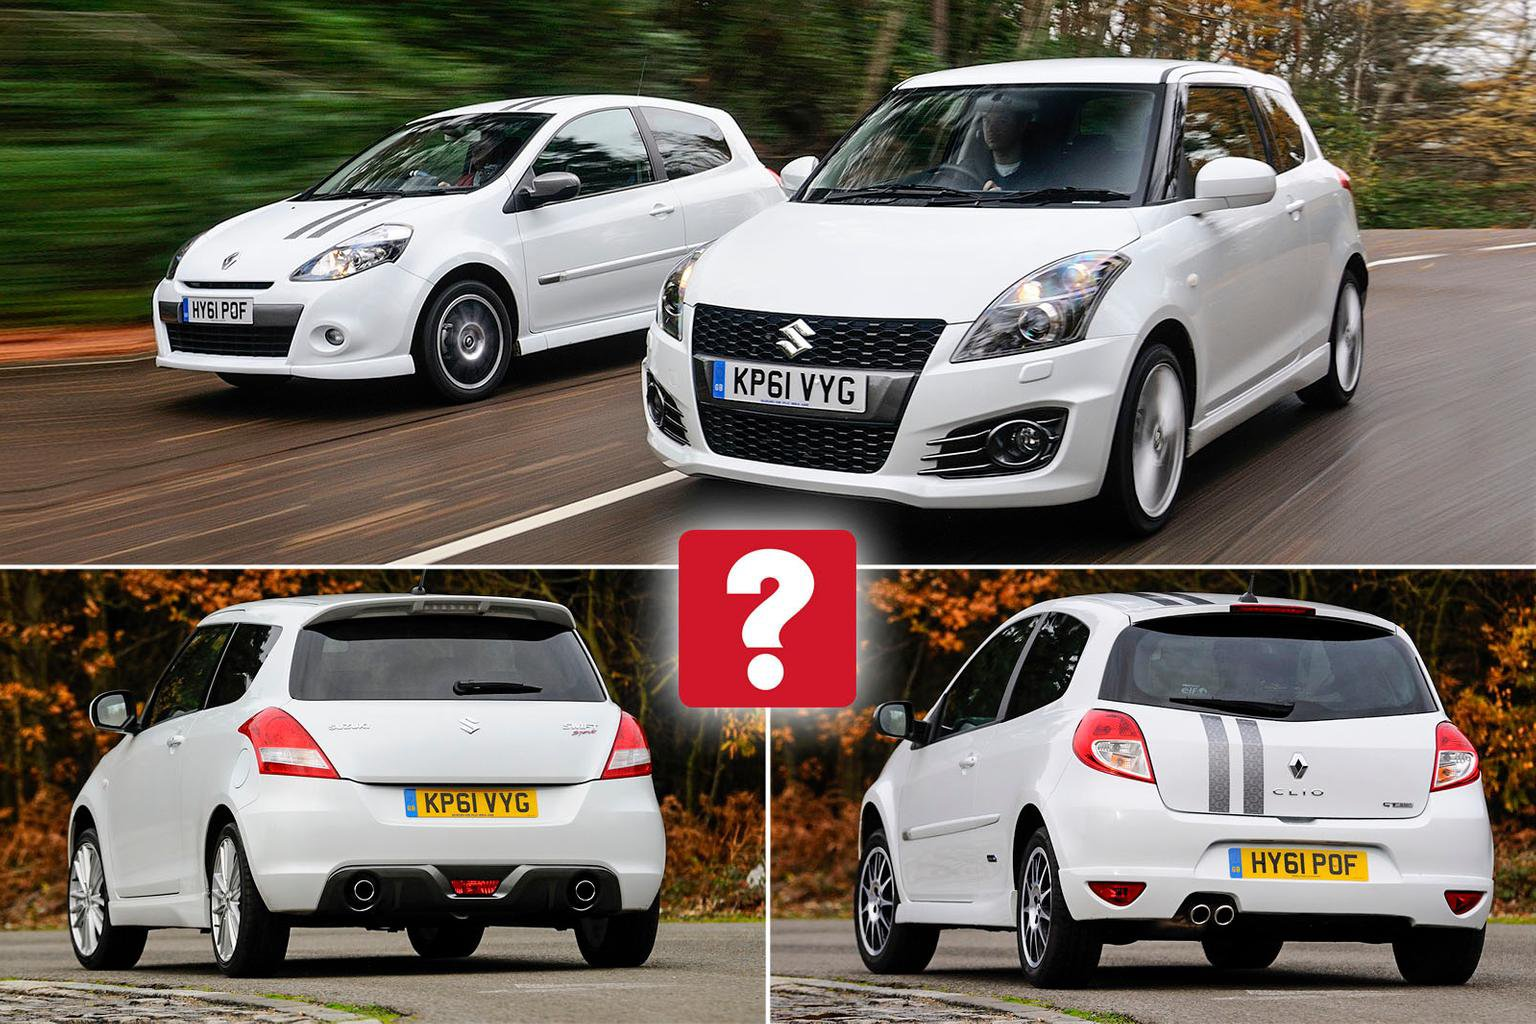 Used Renault Clio Gordini vs Suzuki Swift Sport